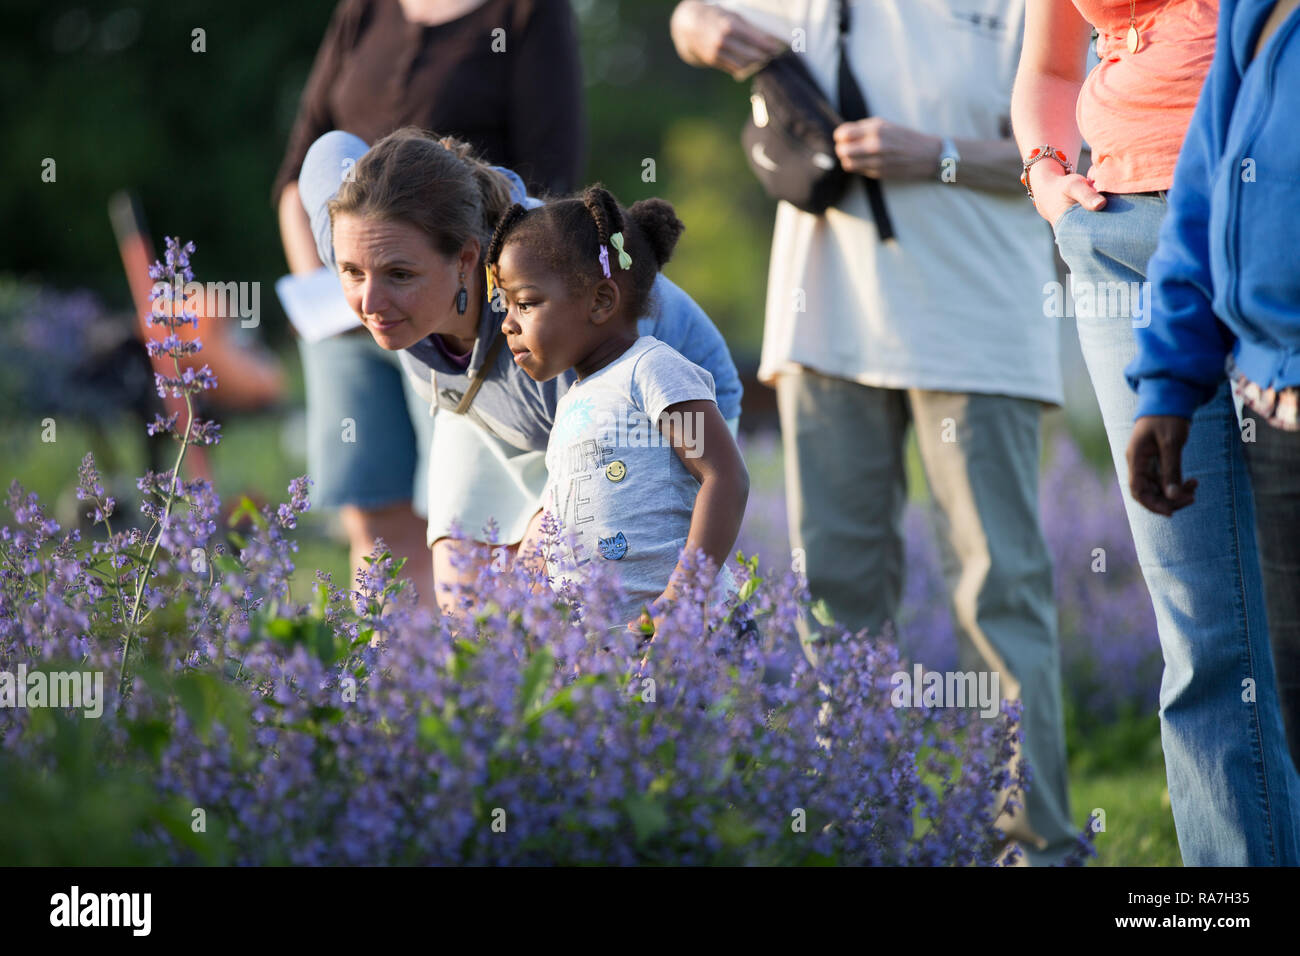 A middle aged woman bends over to look at something with a young girl in a community flower garden - Stock Image